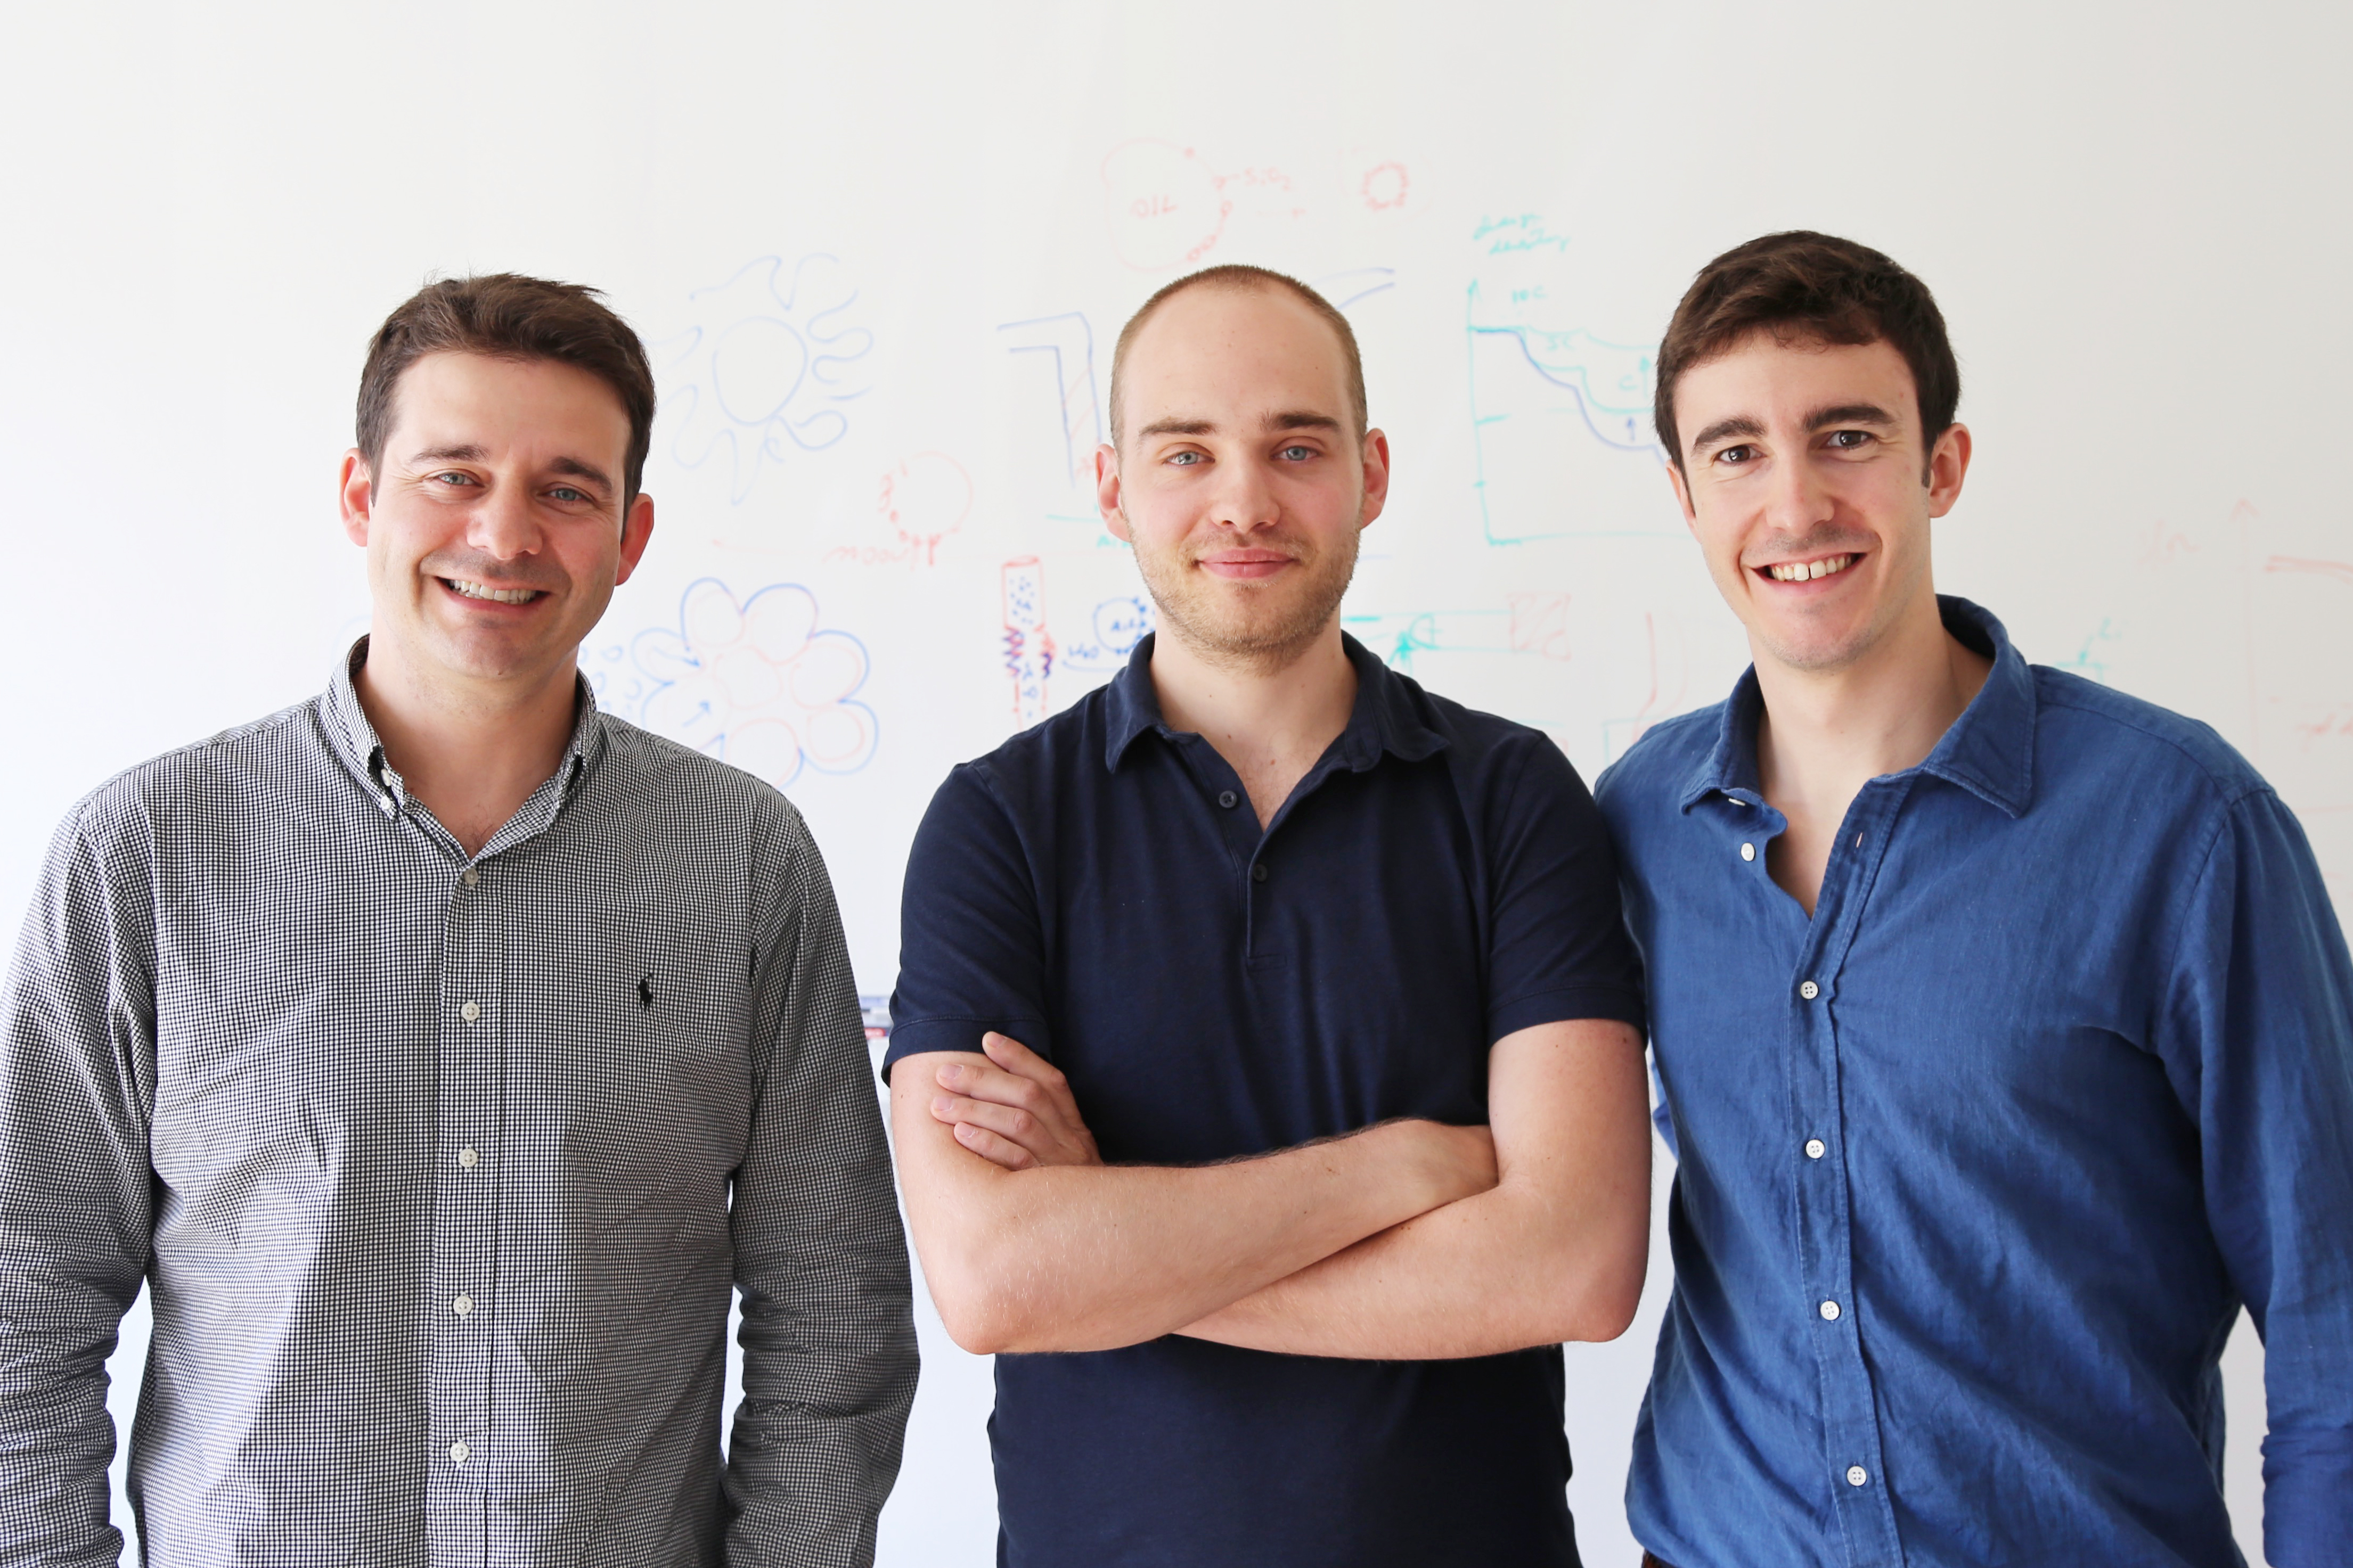 The envolved scientists from ETH Zurich, left to right: André Studart, co-first author Florian Bouville, and Tommaso Magrini. (Photo: ETZ Zurich)